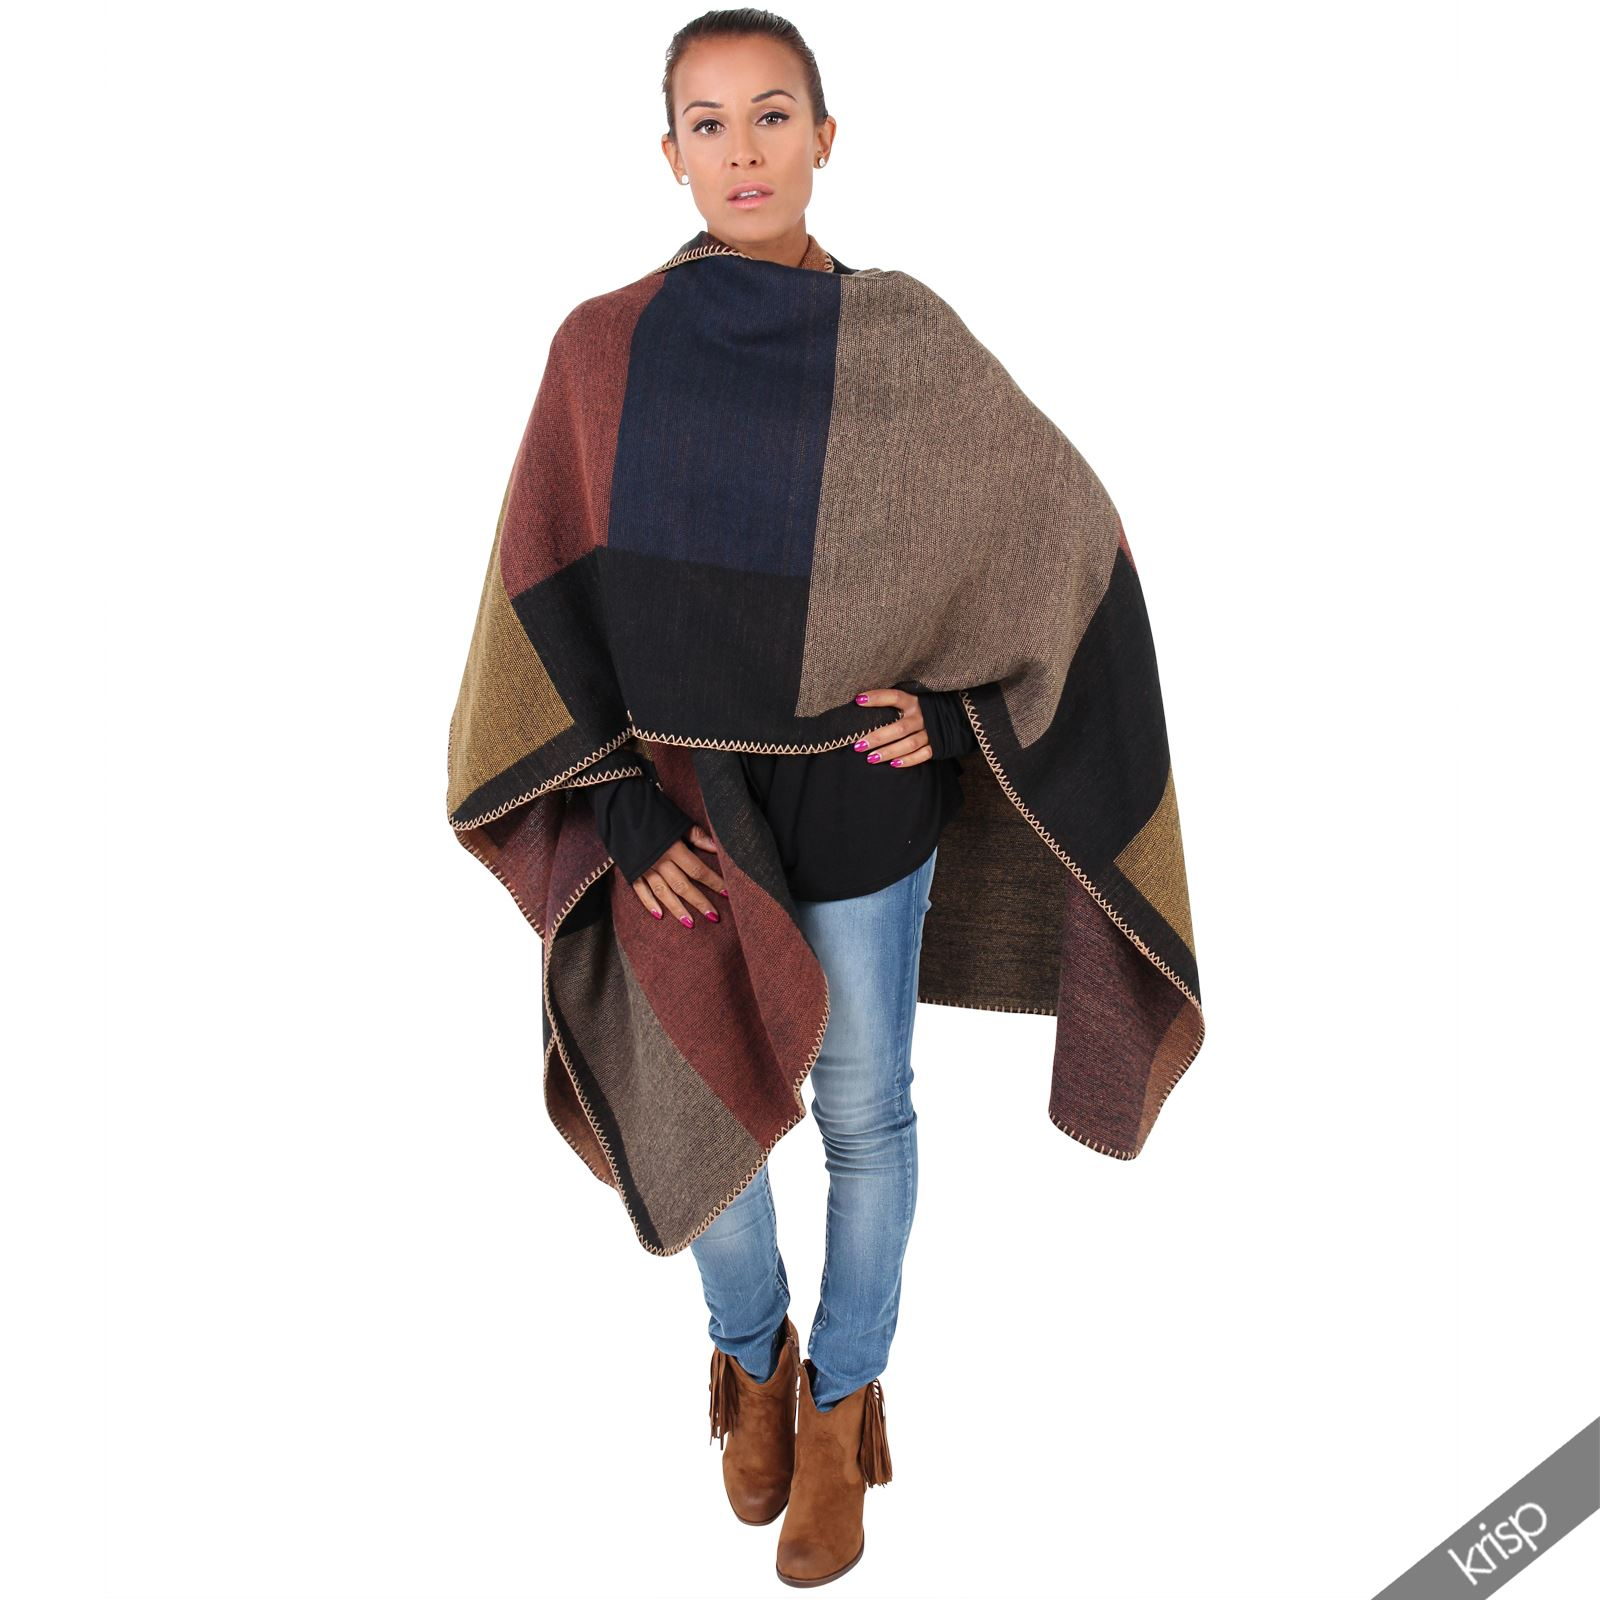 Winter Large Wrap Shrug Check Blanket Scarf Shawl Duster Coat Cape Top Outerwear